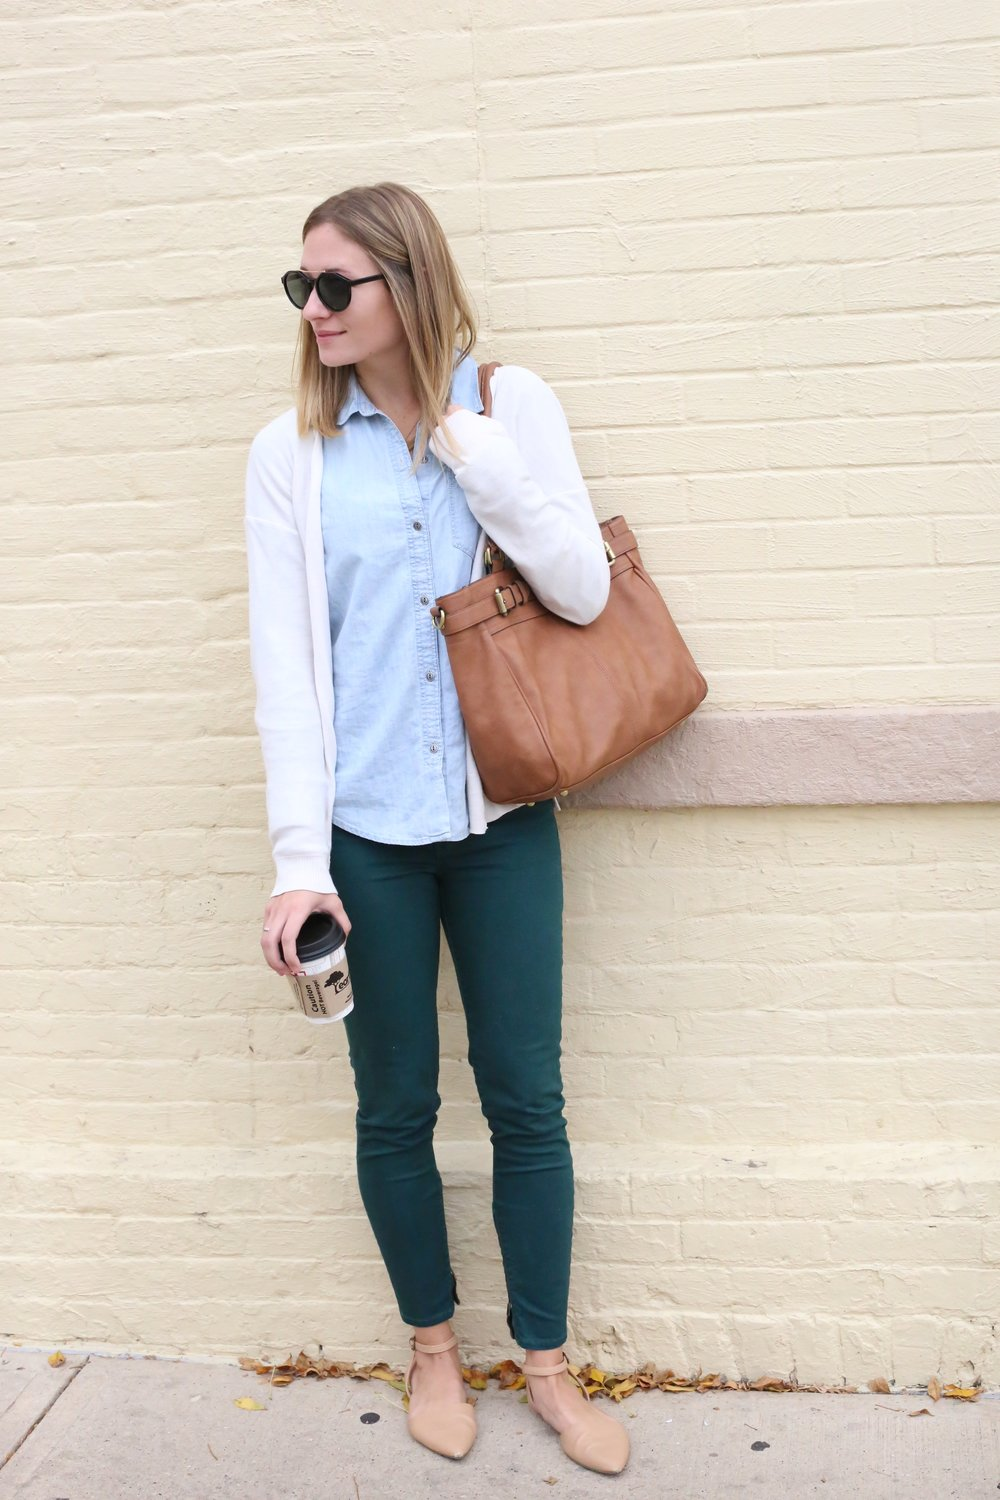 Colored denim + basics